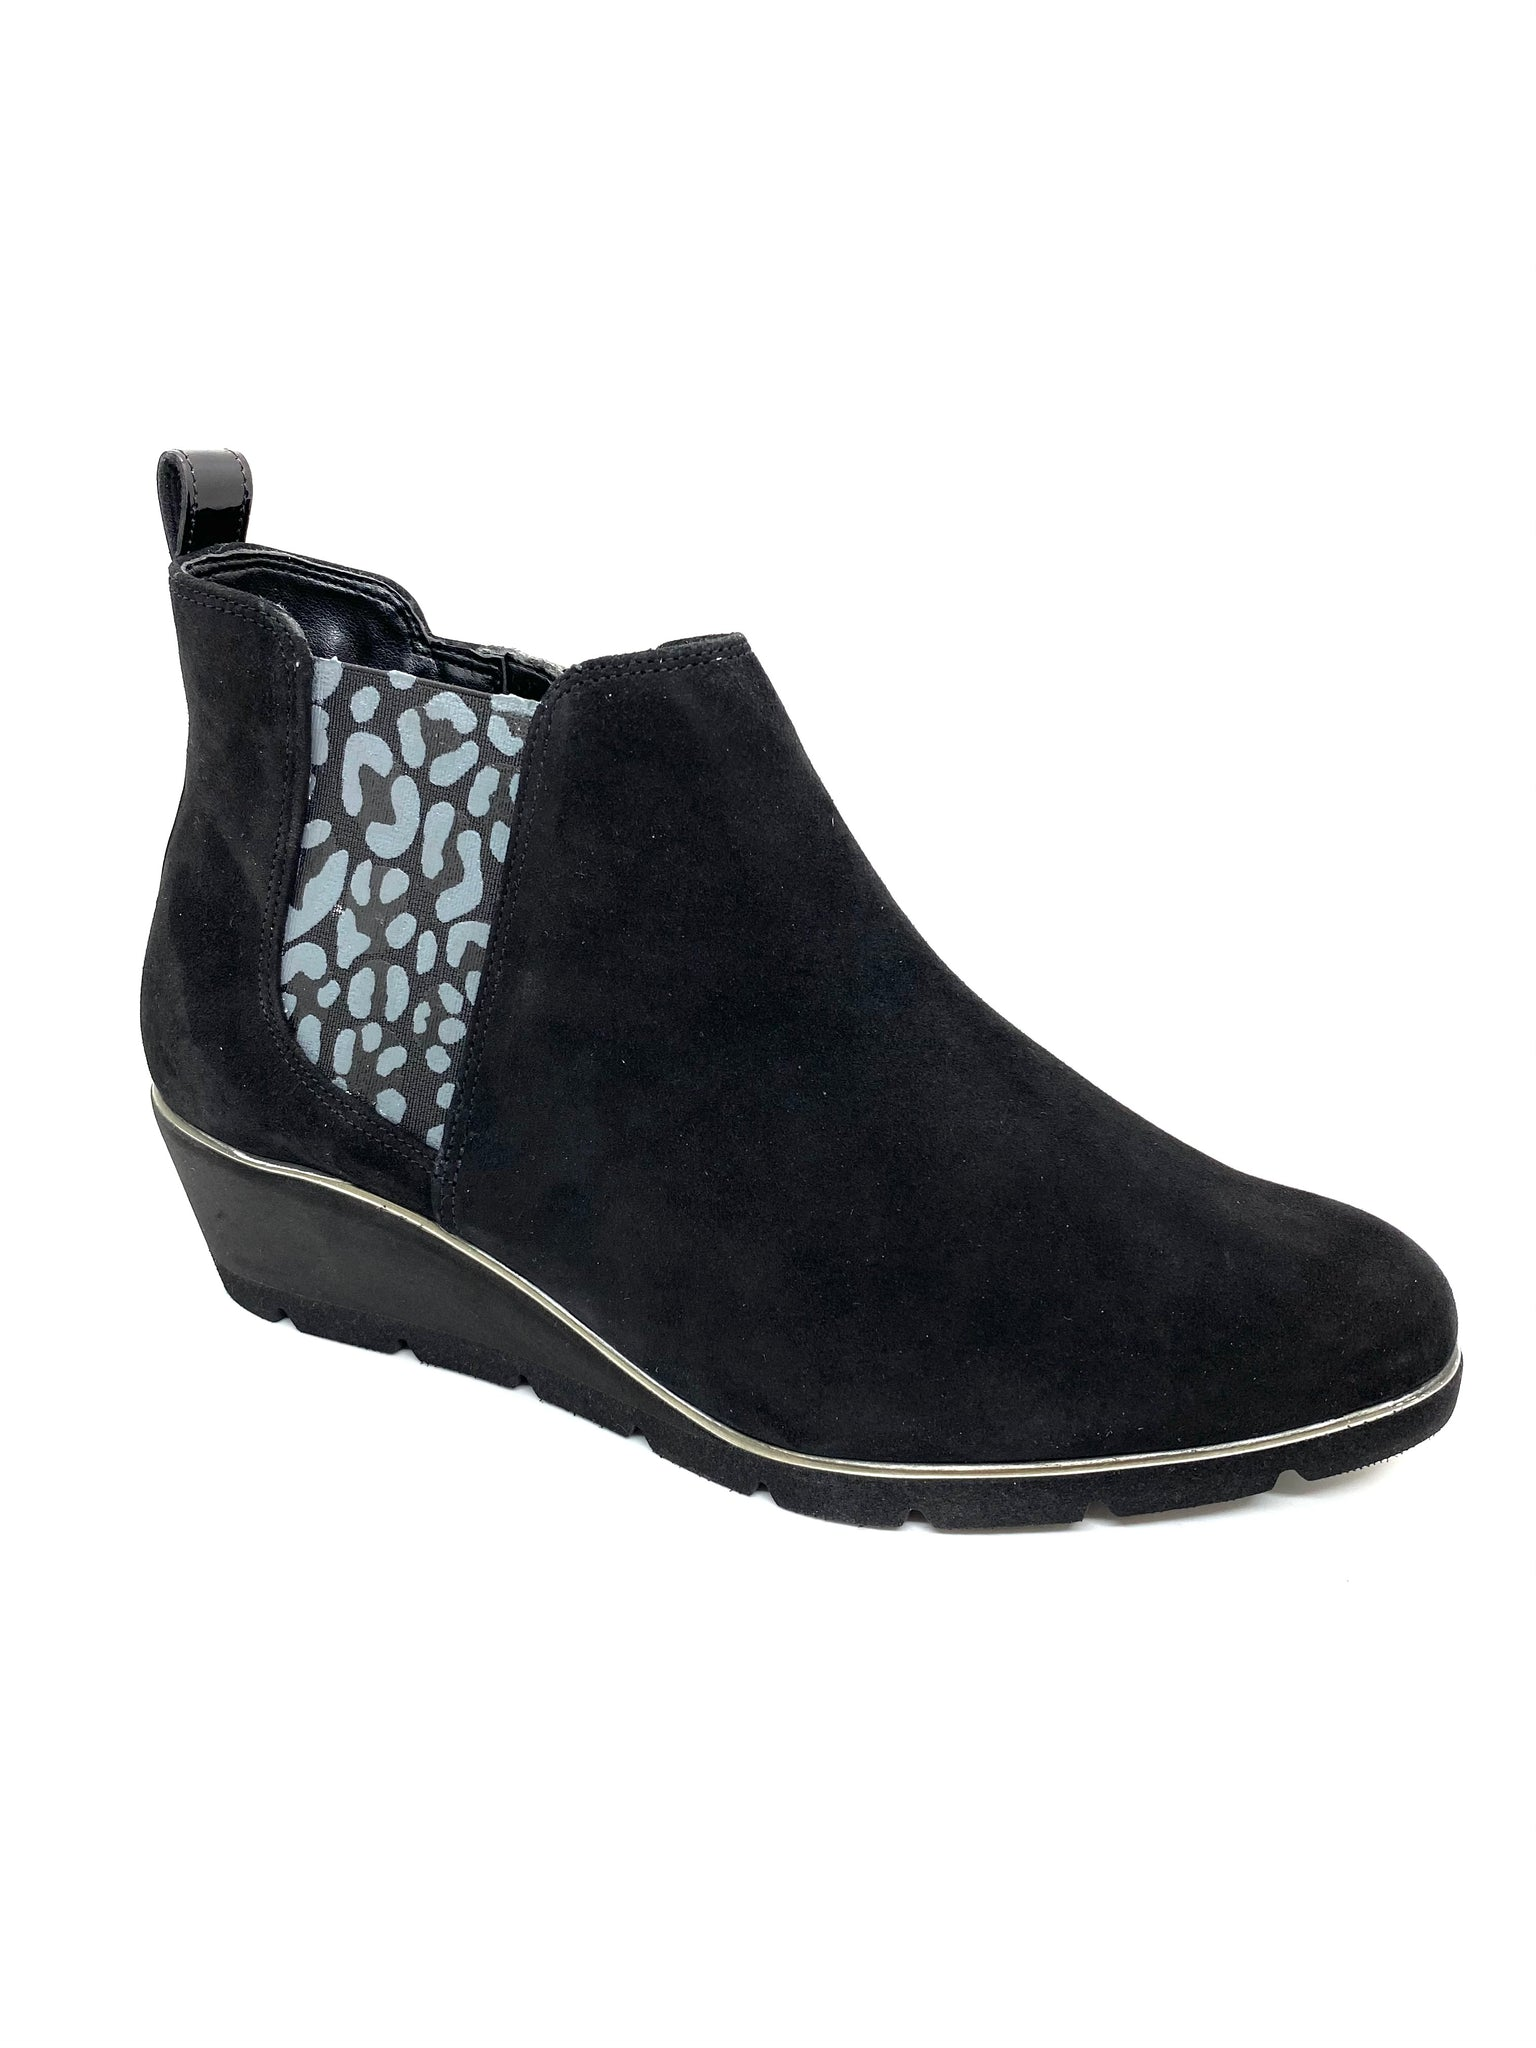 Van Dal Ladies Russet Wedge Ankle Boot Black